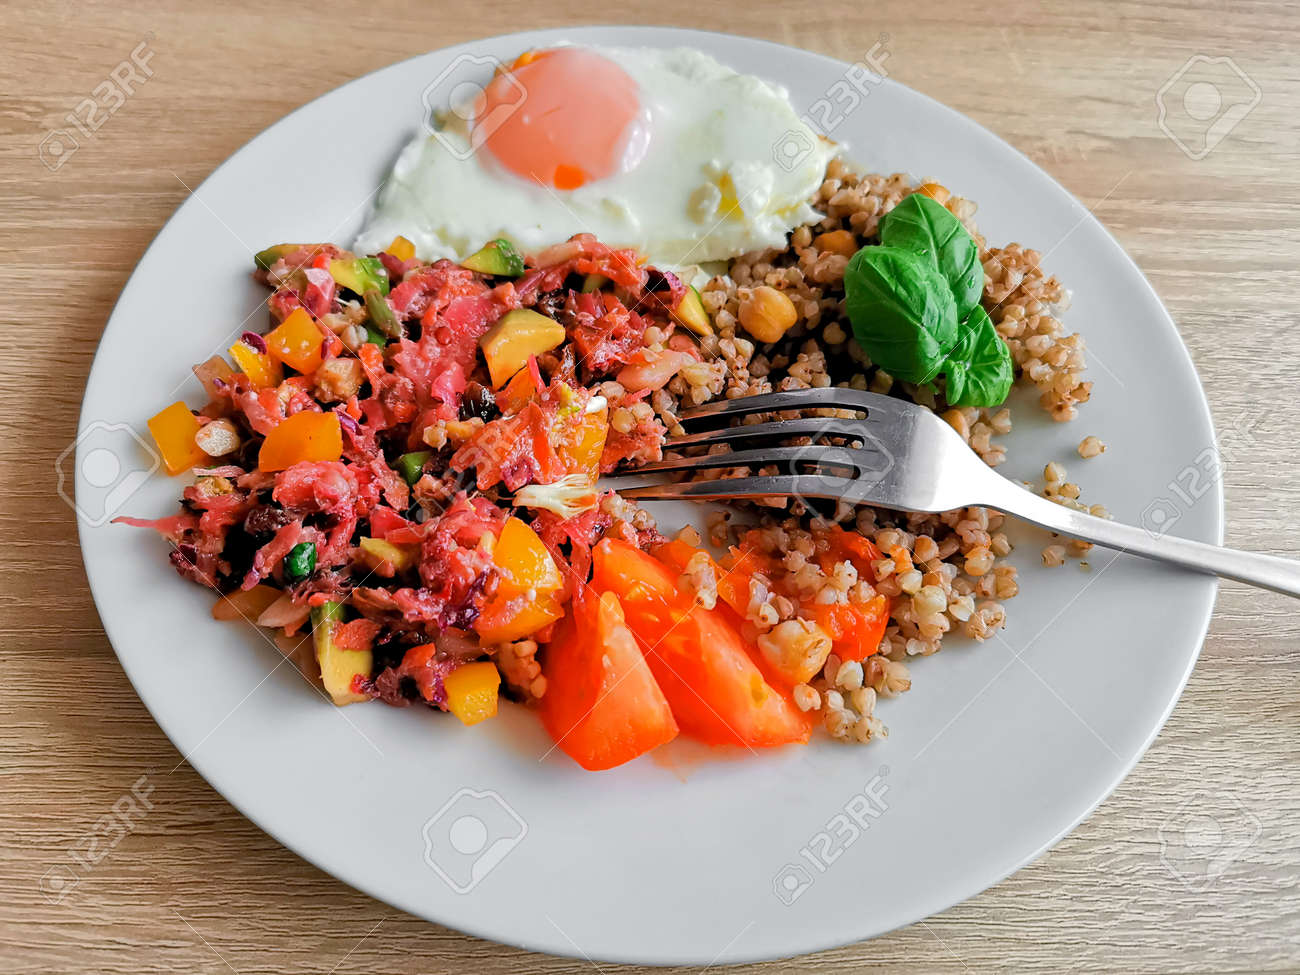 Buckwheat groats with chickpeas, basil leaves, soft-boiled egg and vegetable salad. A healthy and nutritious meal - 160902131